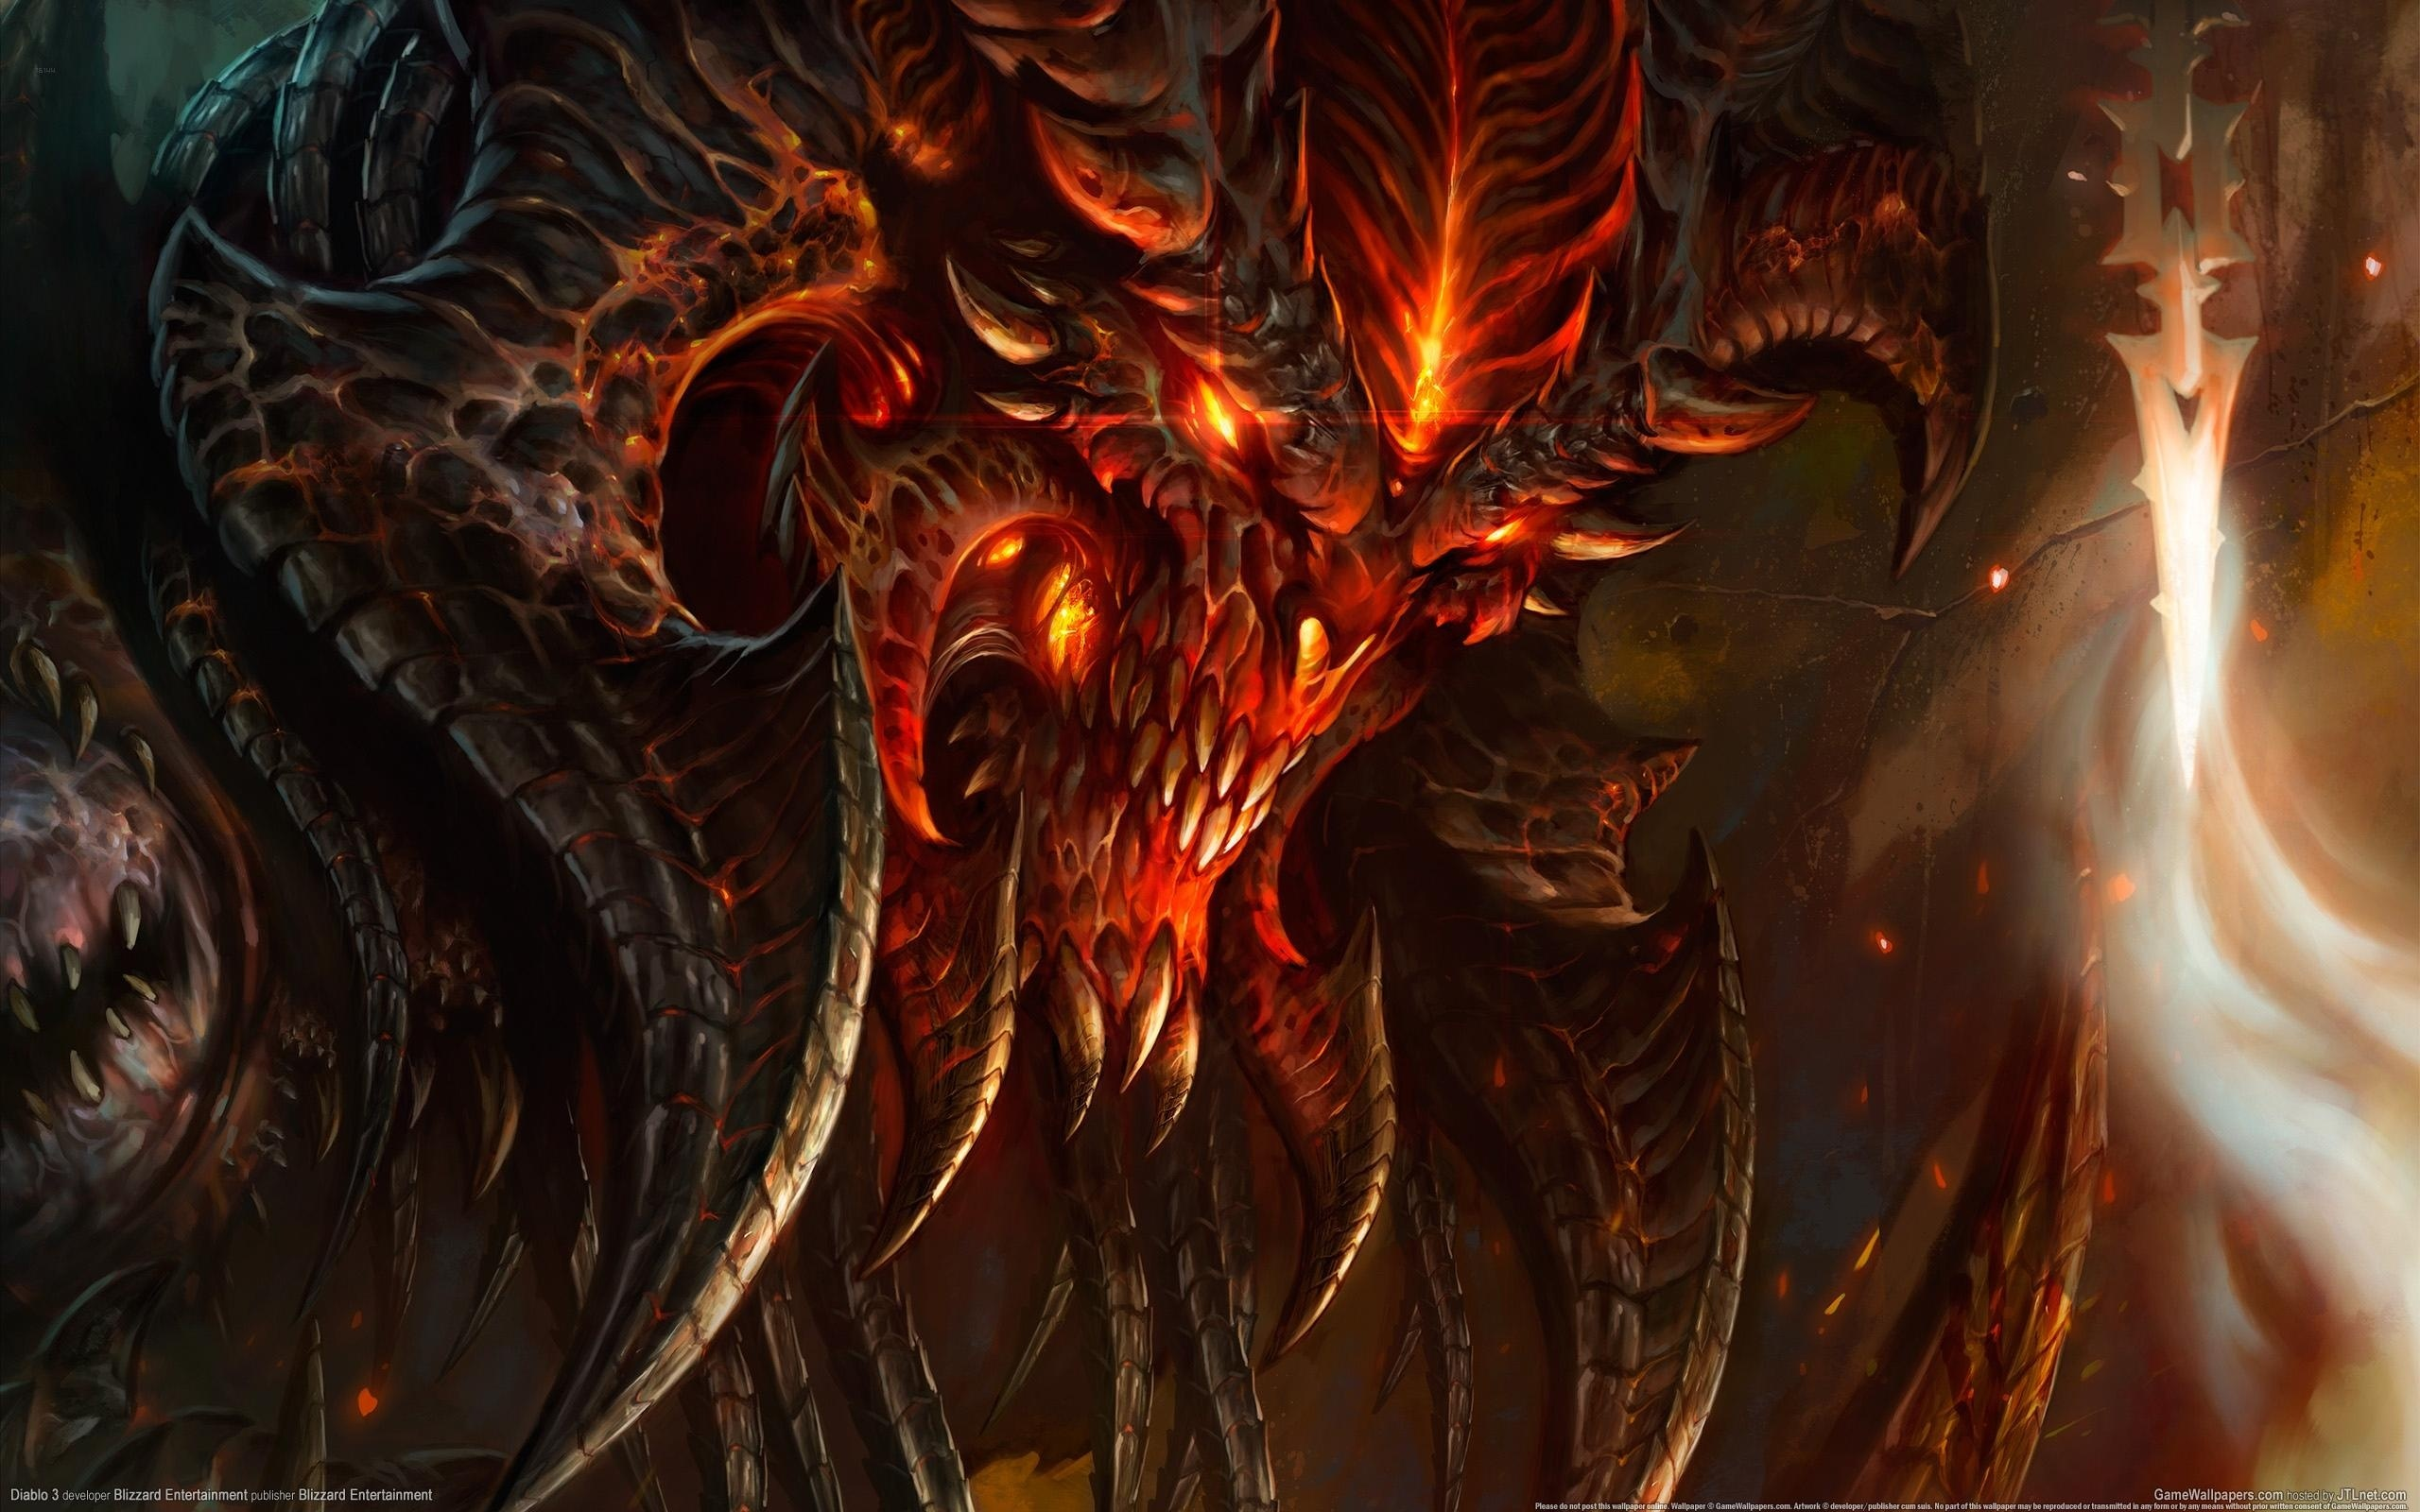 immortal lives images demon HD wallpaper and background 2560x1600